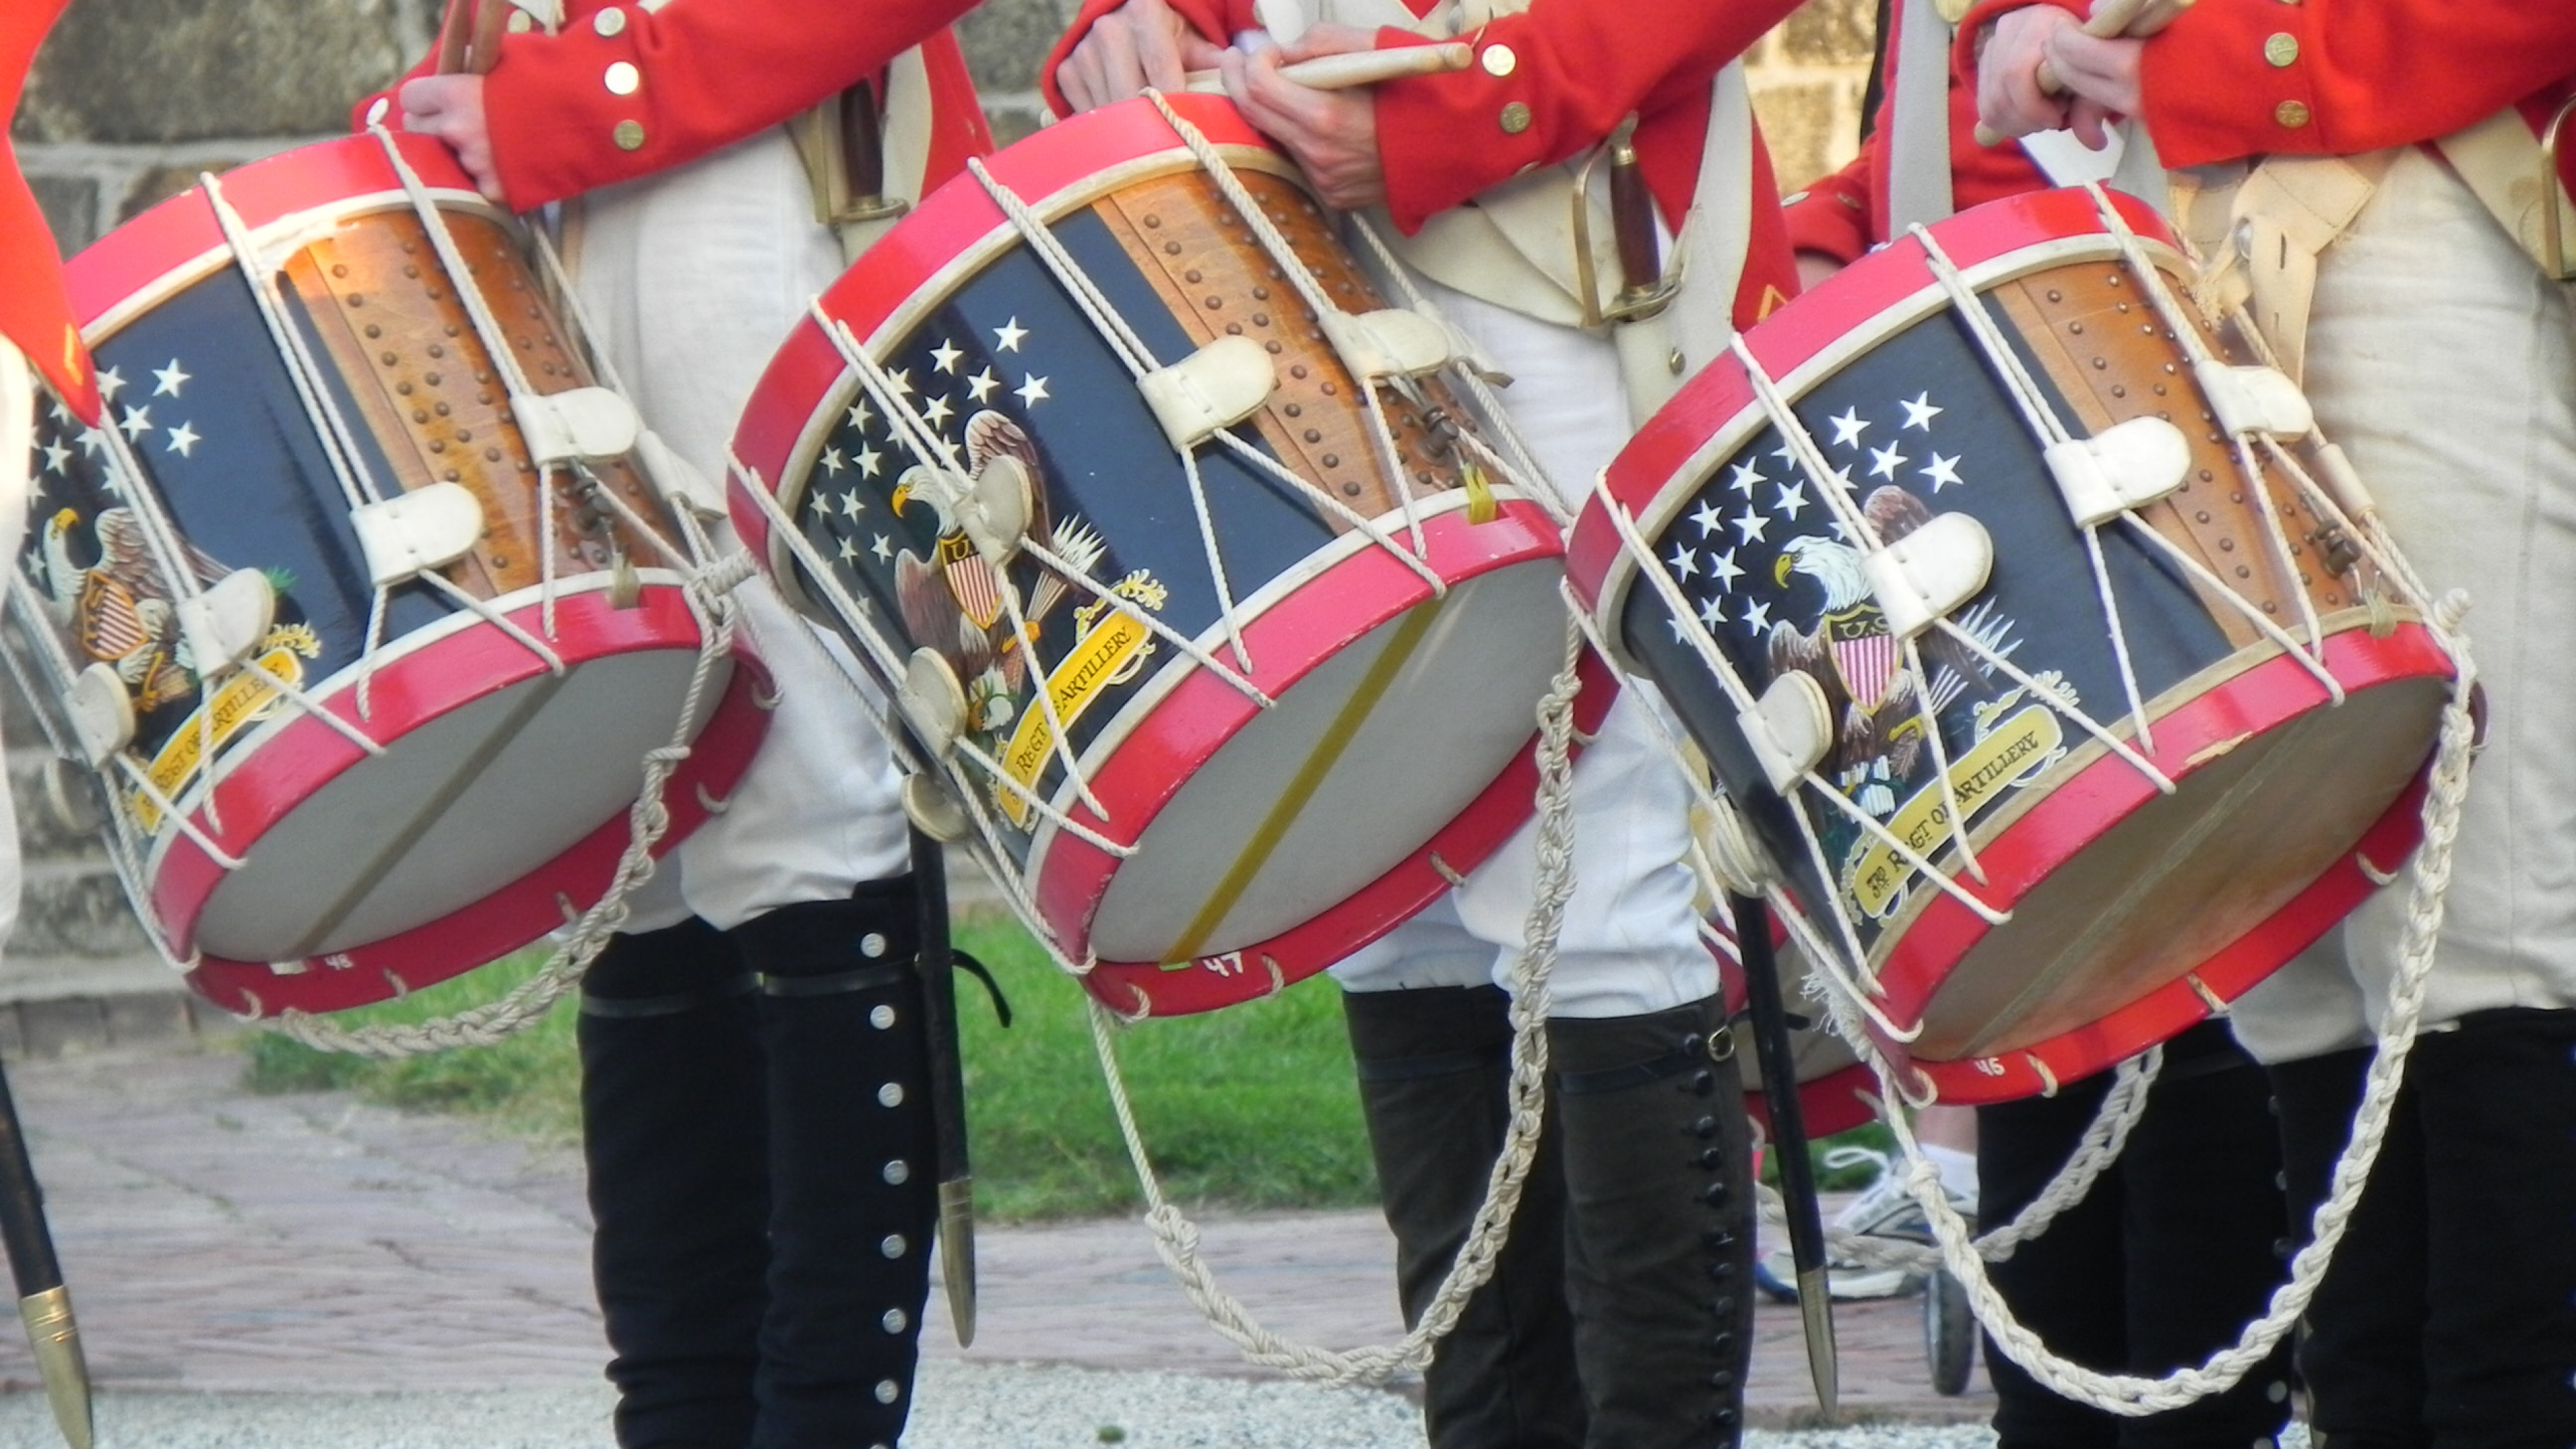 Red, white, and blue snare drums in a line